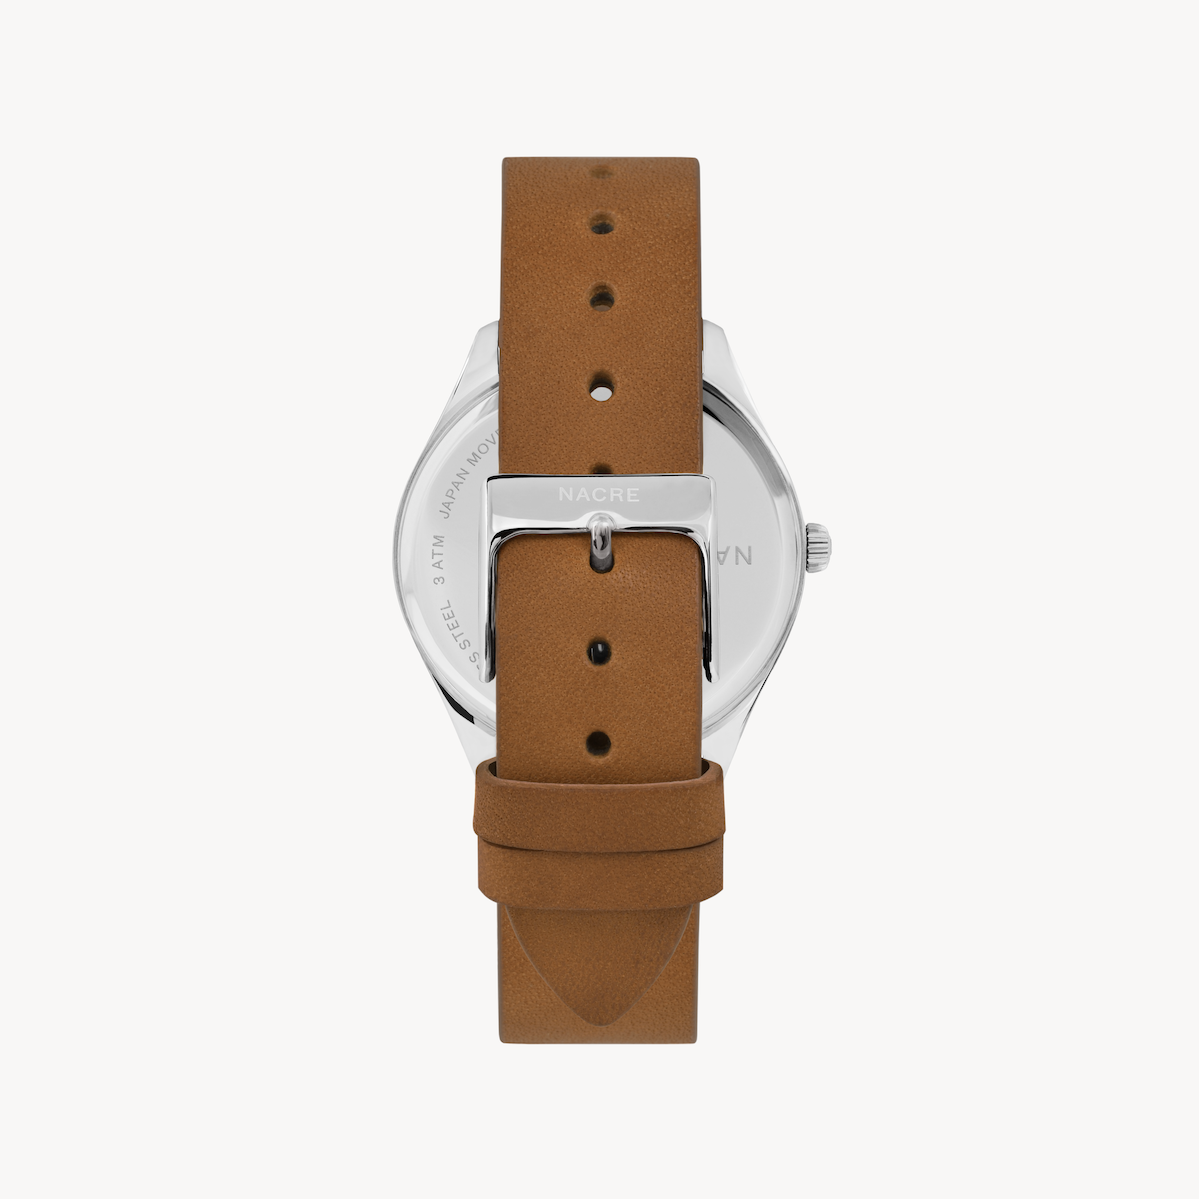 Lune 48 - Stainless Steel - Saddle Leather